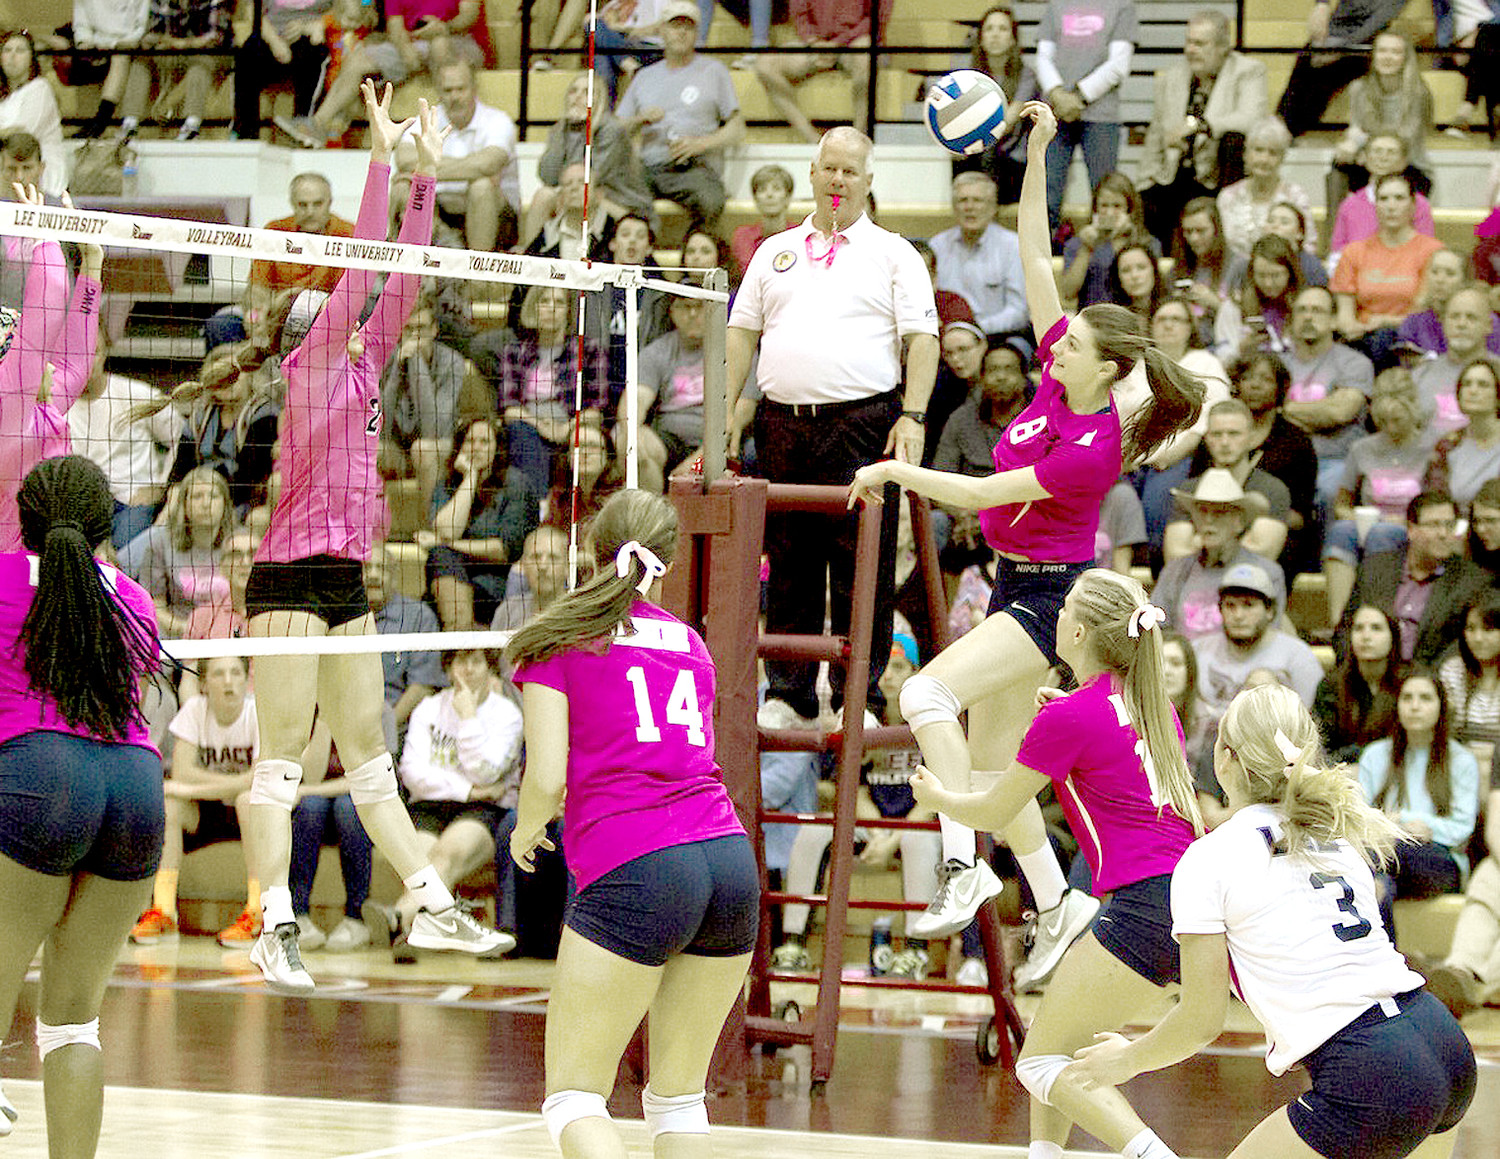 LEE UNIVERSITY volleyball players score a point against West Georgia in last year's Volley for a Cure.